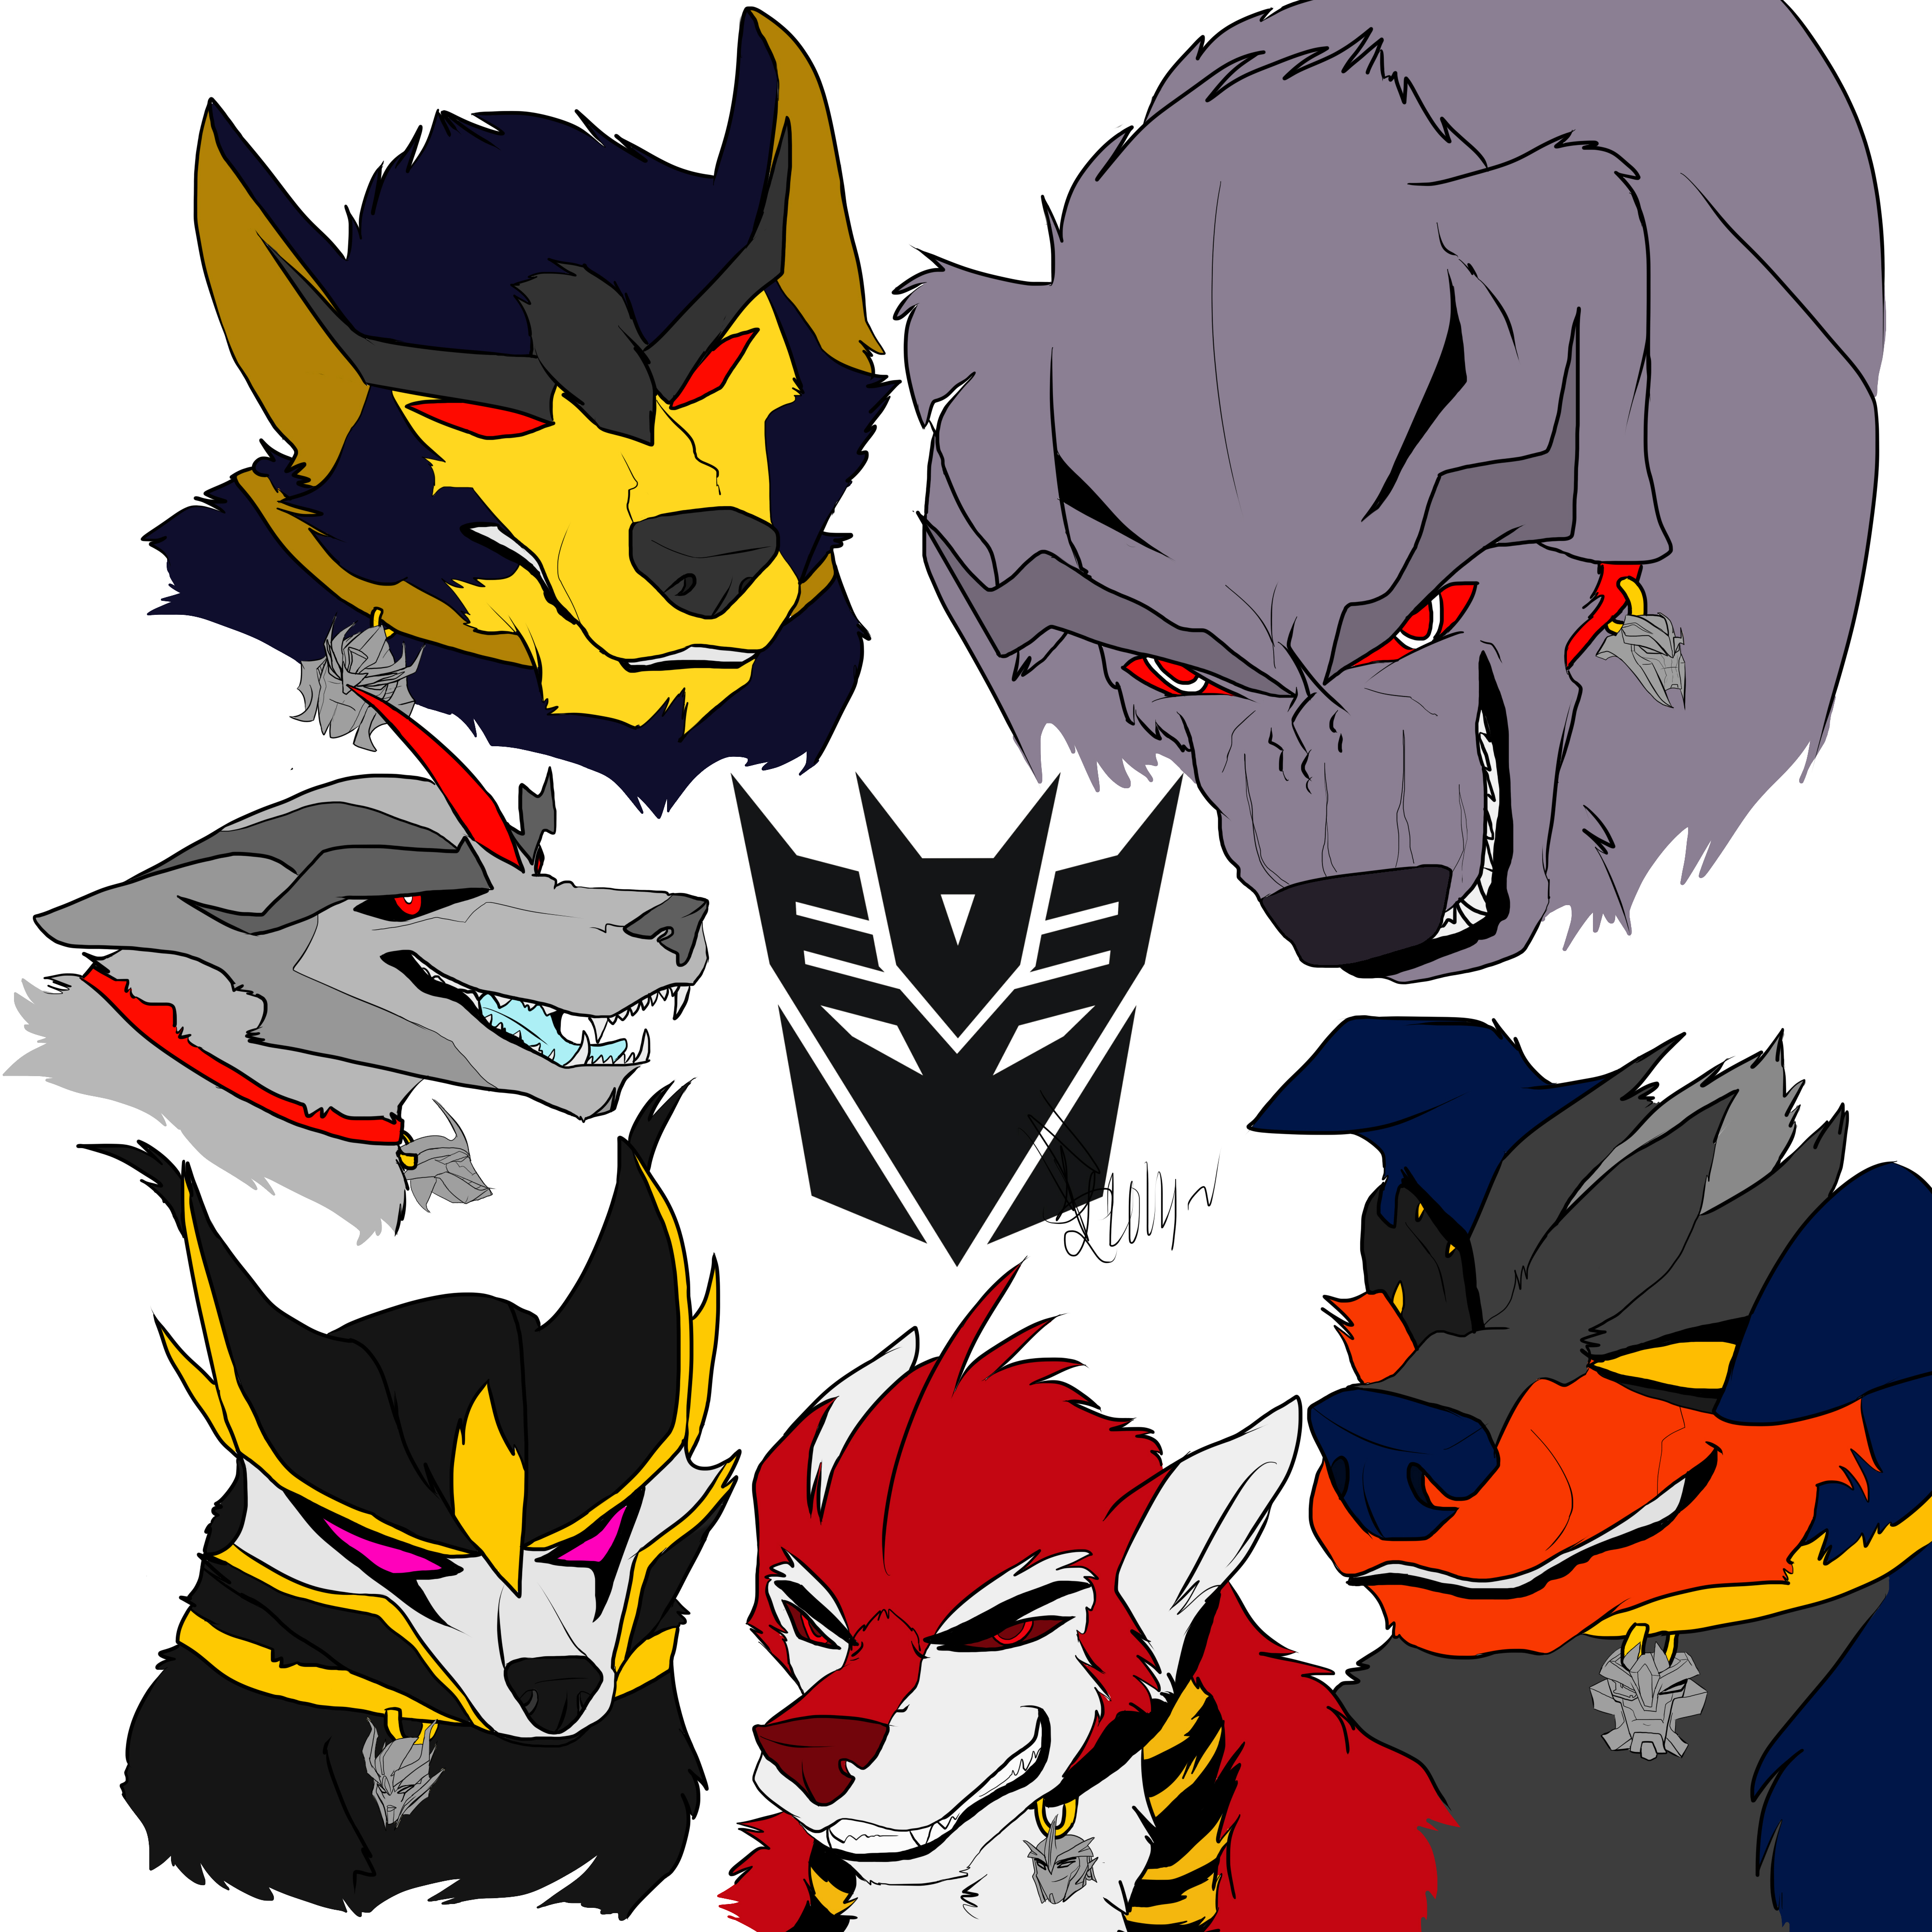 Dogformers: Decepticons by TheSpeed0fLlight on DeviantArt